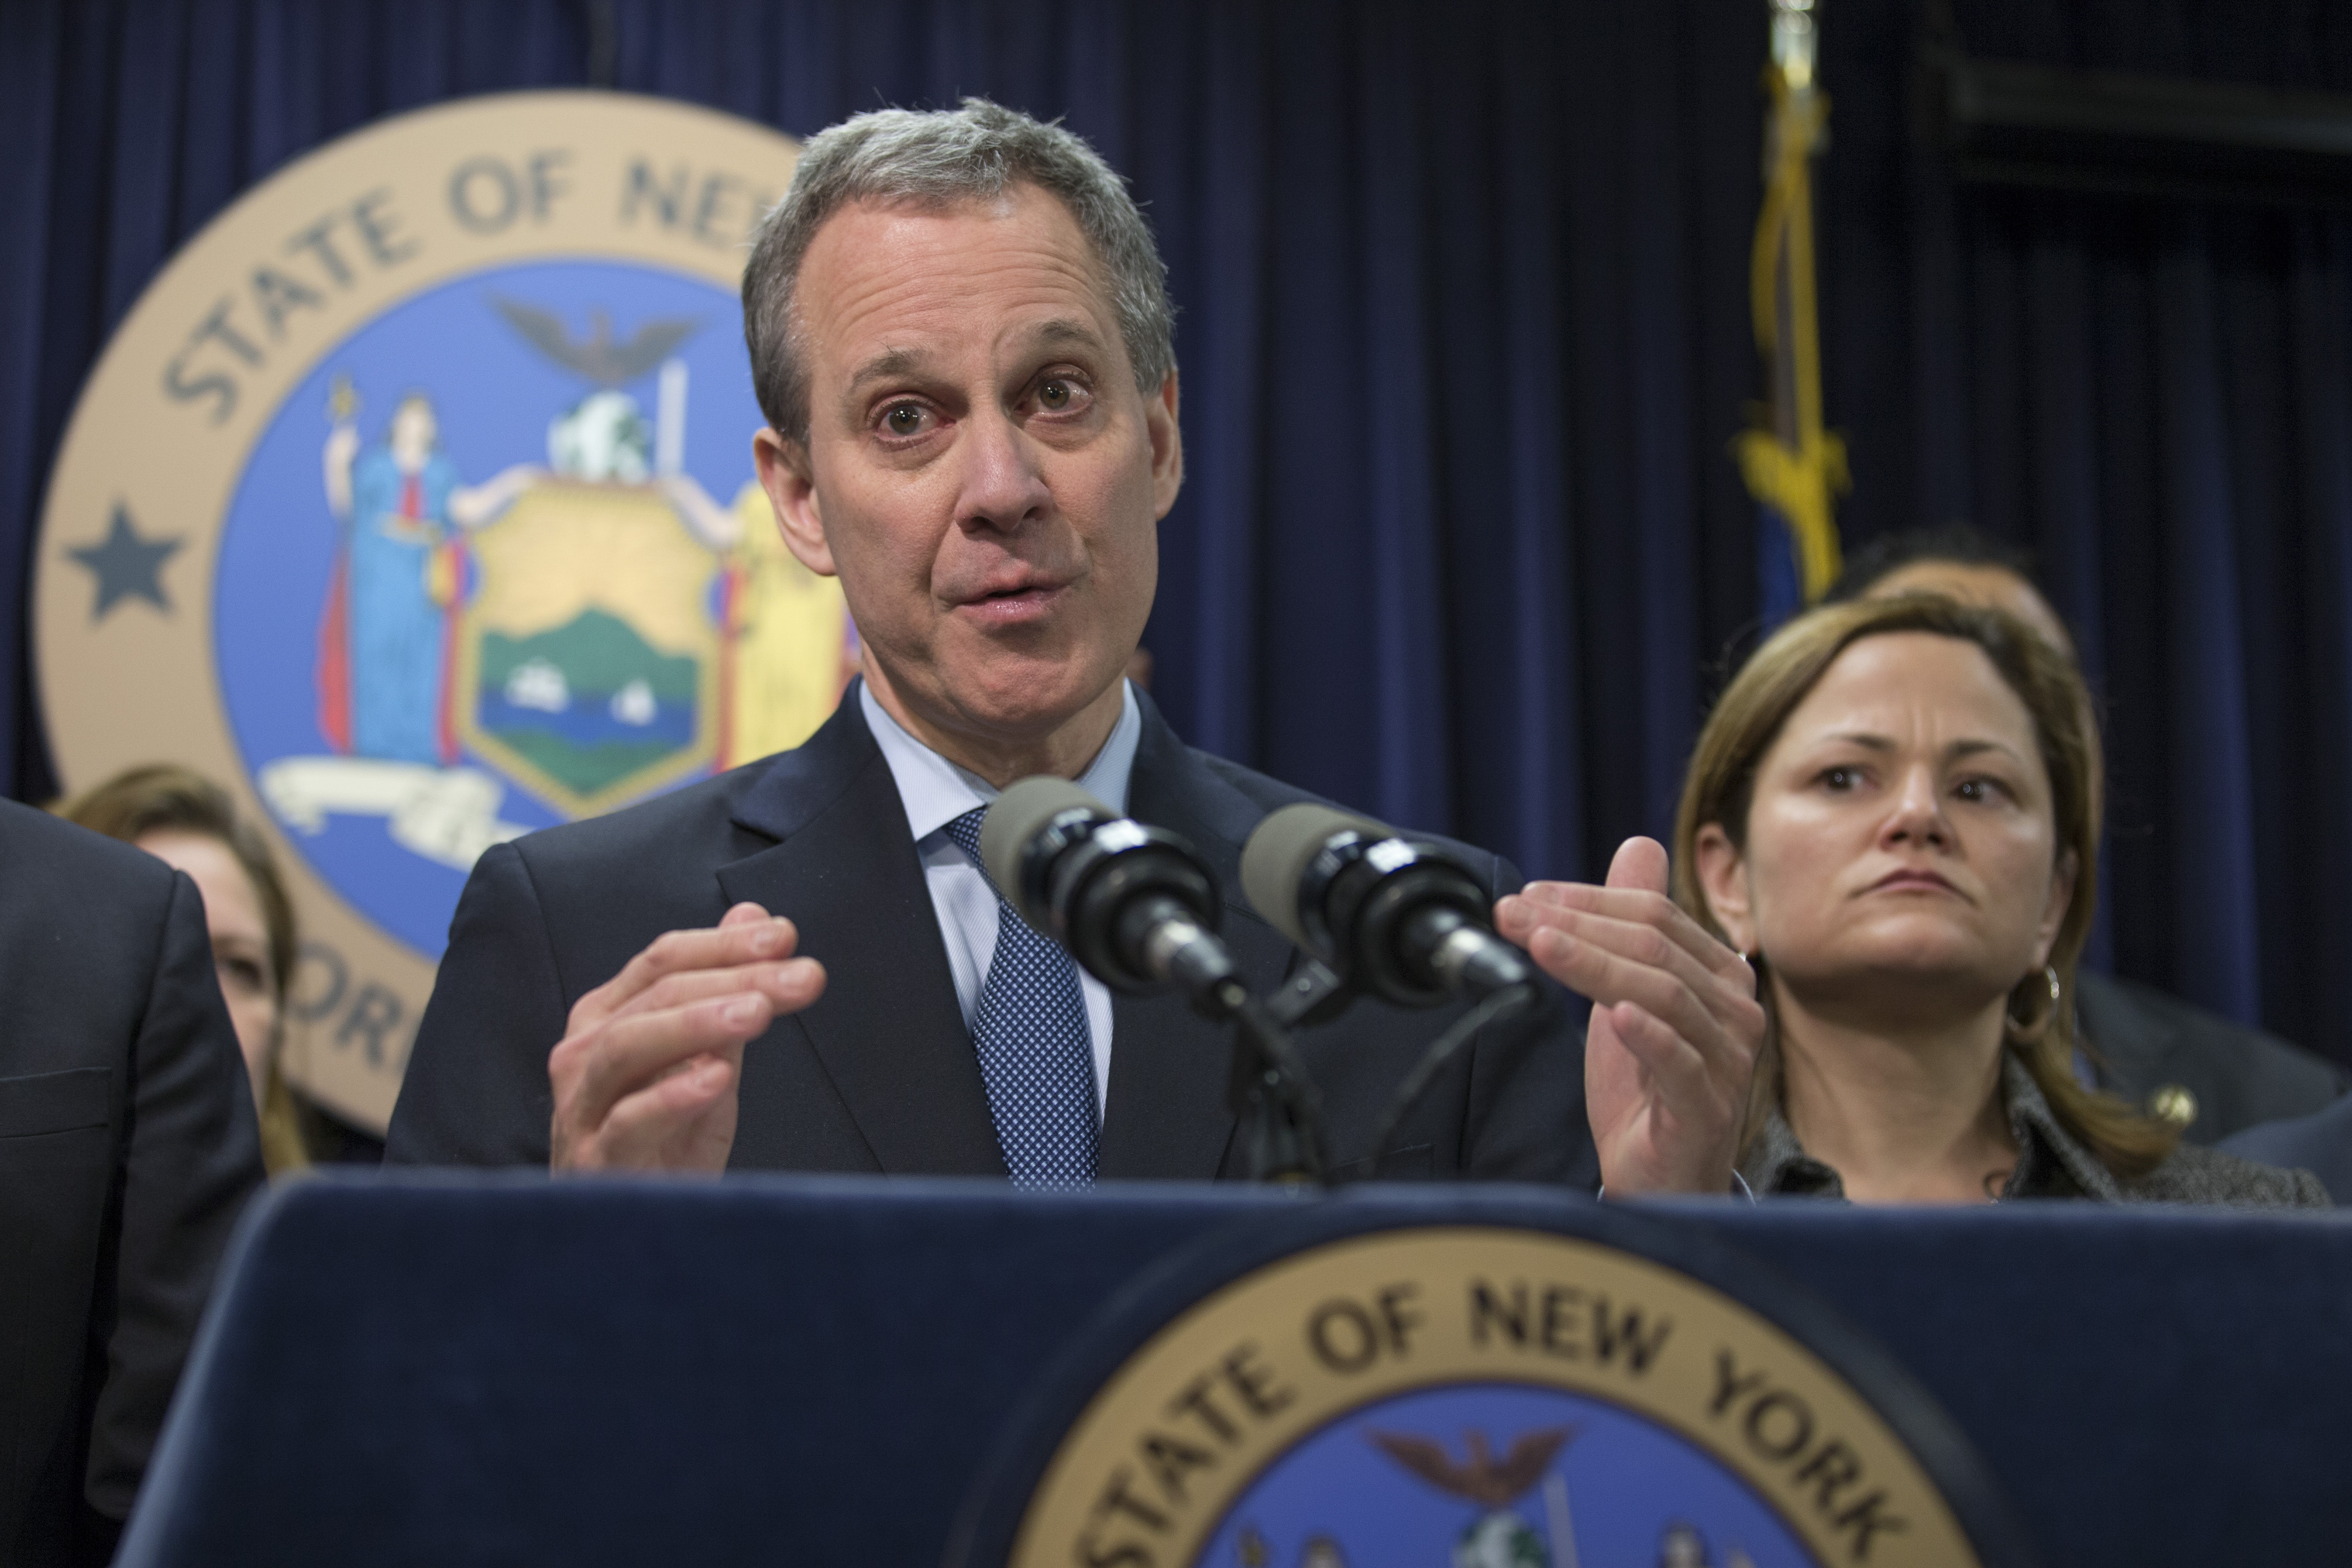 State Attorney General Eric Schneiderman made naloxone more widely available.